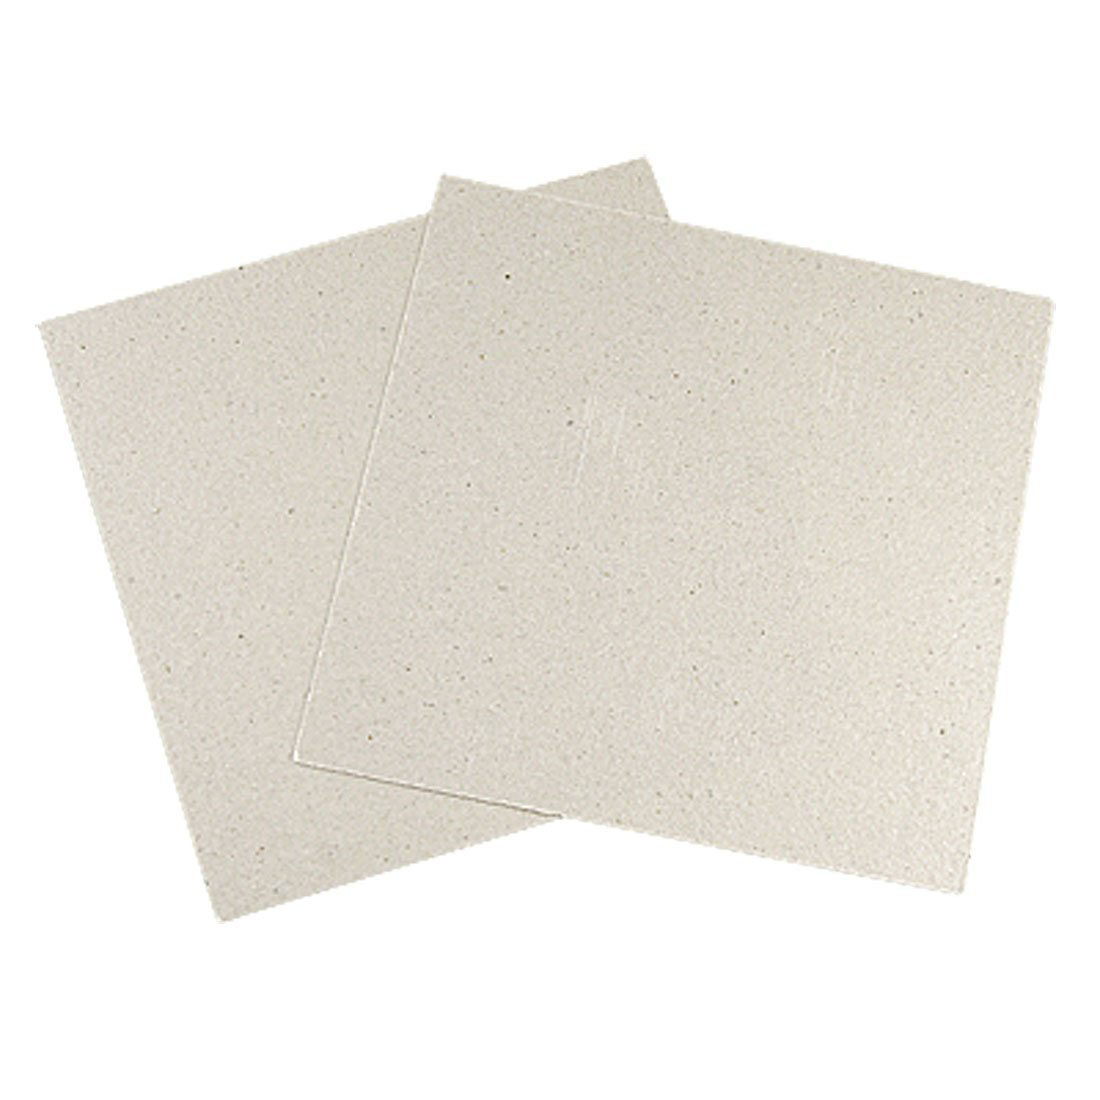 2 X Replacement 12 X 12 Cm Plate Mica For Microwave Drop Shipping